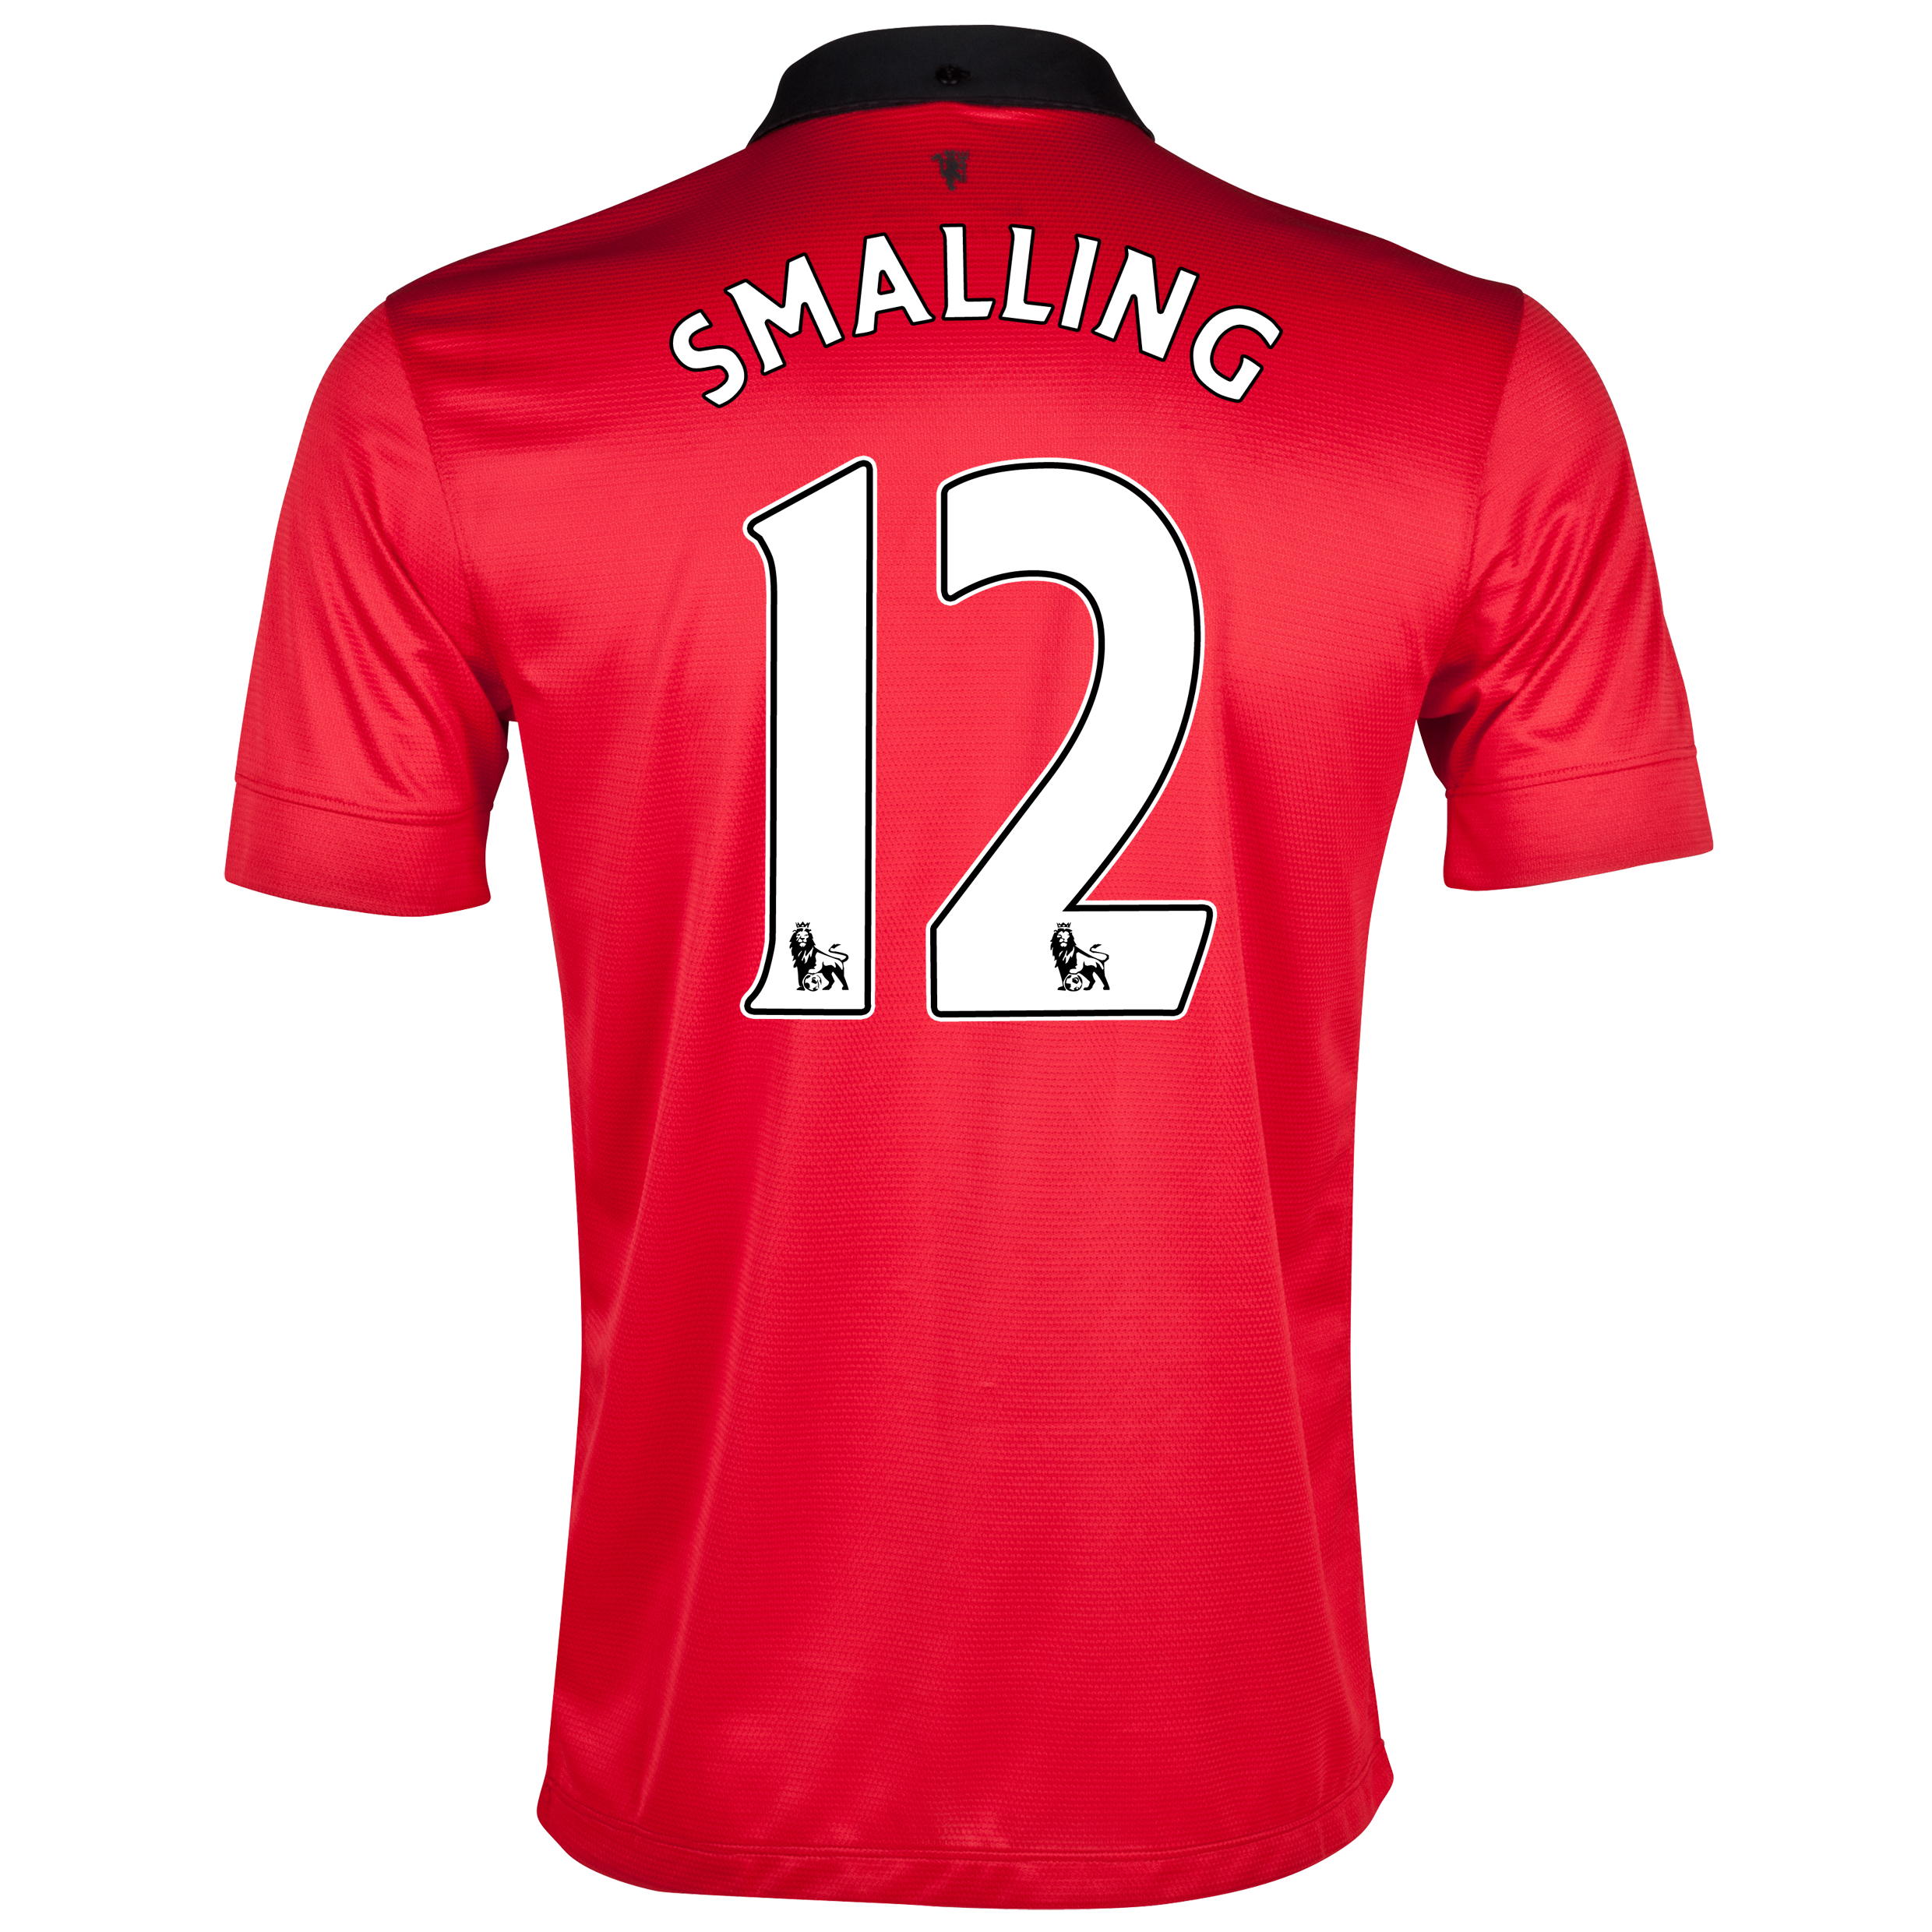 Manchester United Home Shirt 2013/14 with Smalling 12 printing